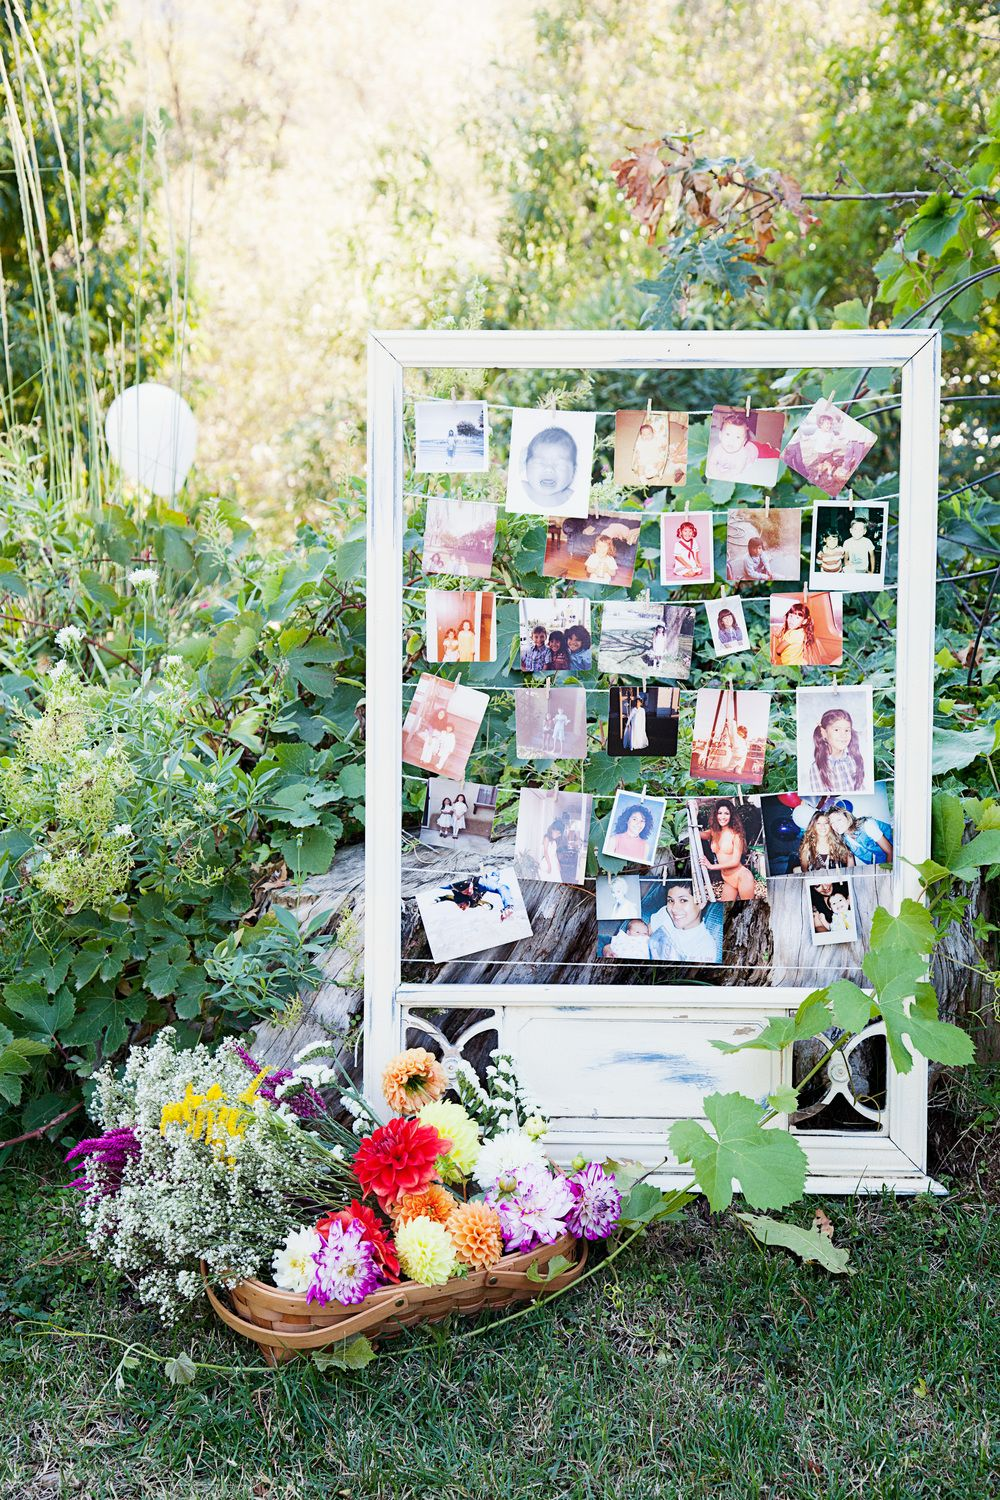 Backyard wedding Hanging pictures of the bride